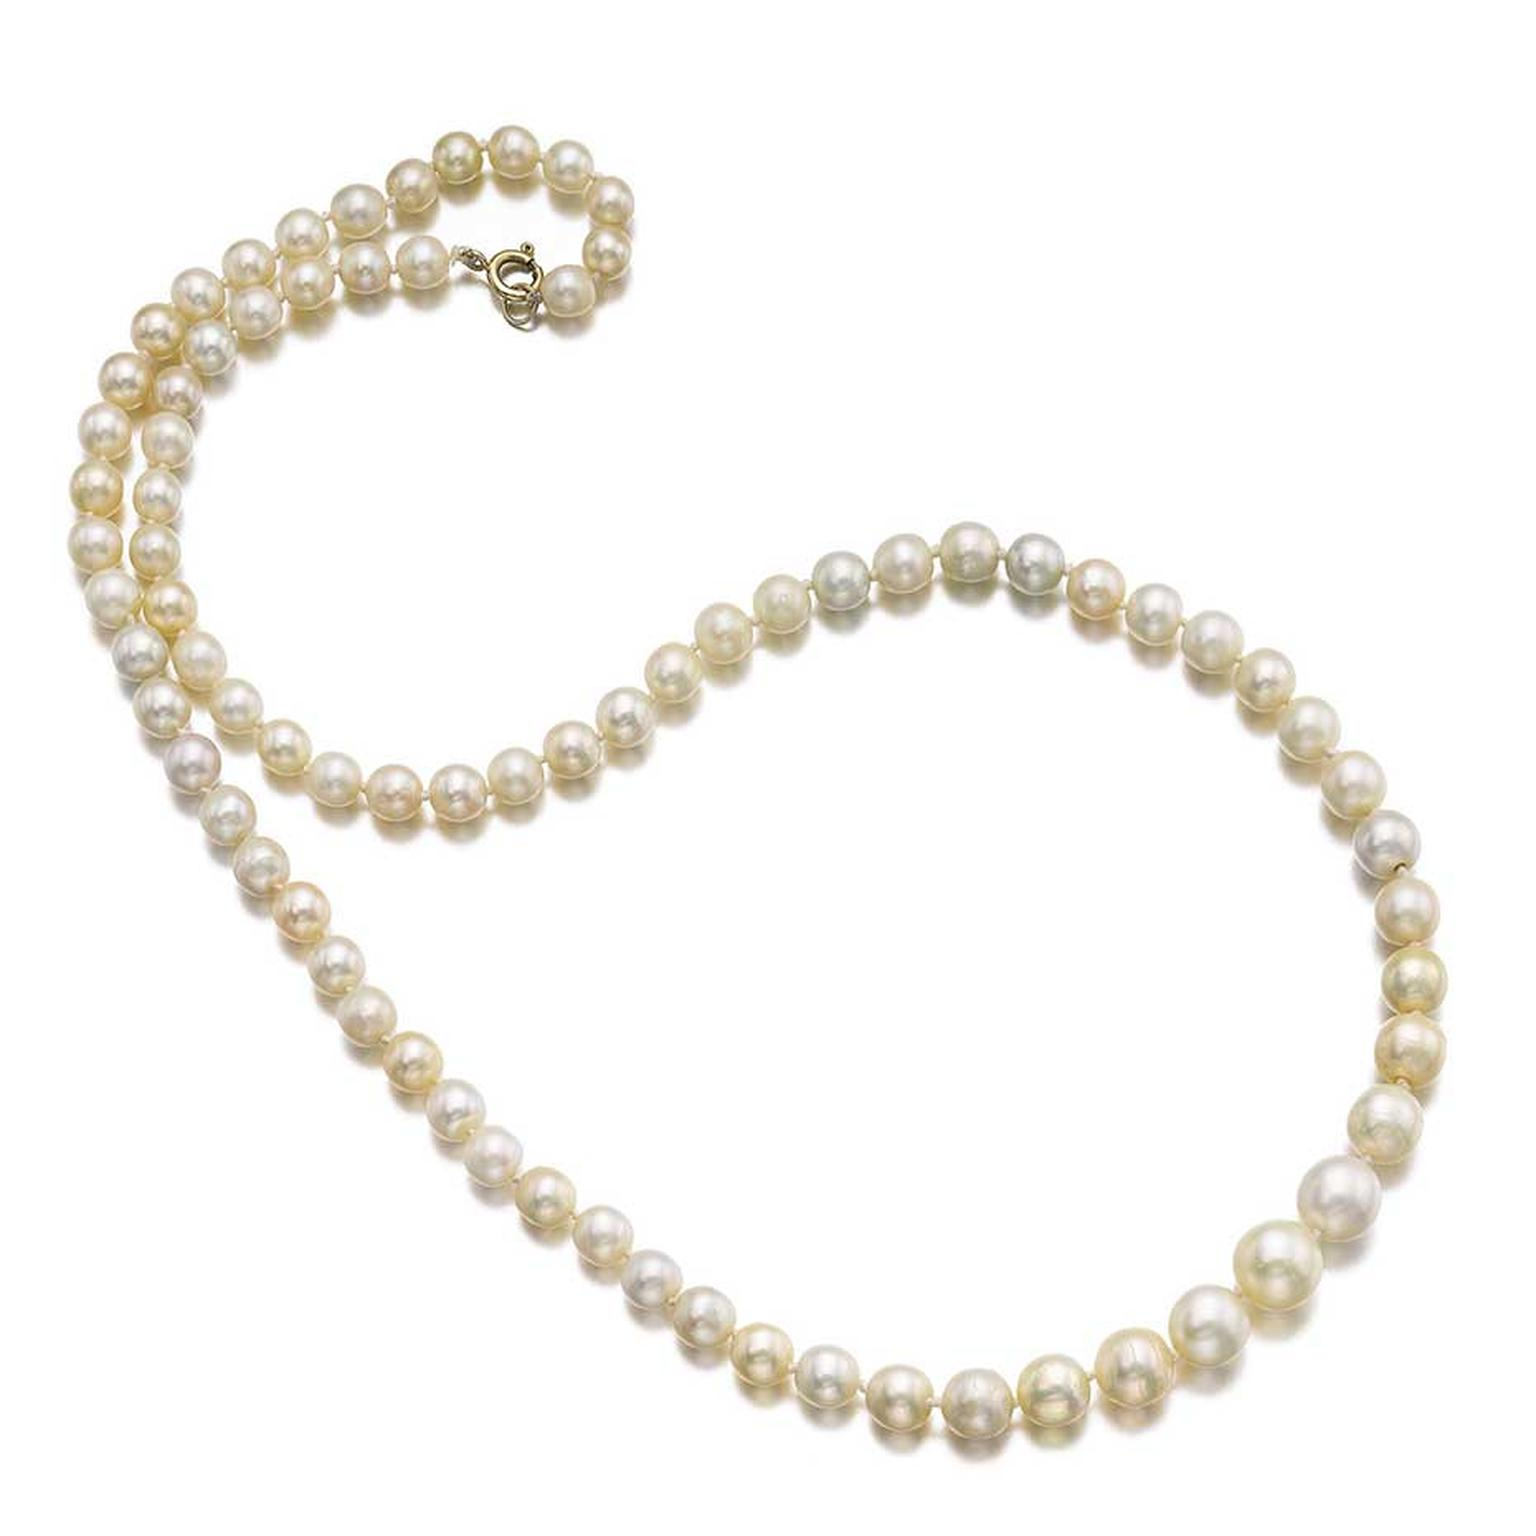 A natural pearl necklace composed of natural pearls measuring from approximately 6.85 to 12.05mm, sold for $830,864, more than 12 times its estimate. (est.$33,821 – $67,642)